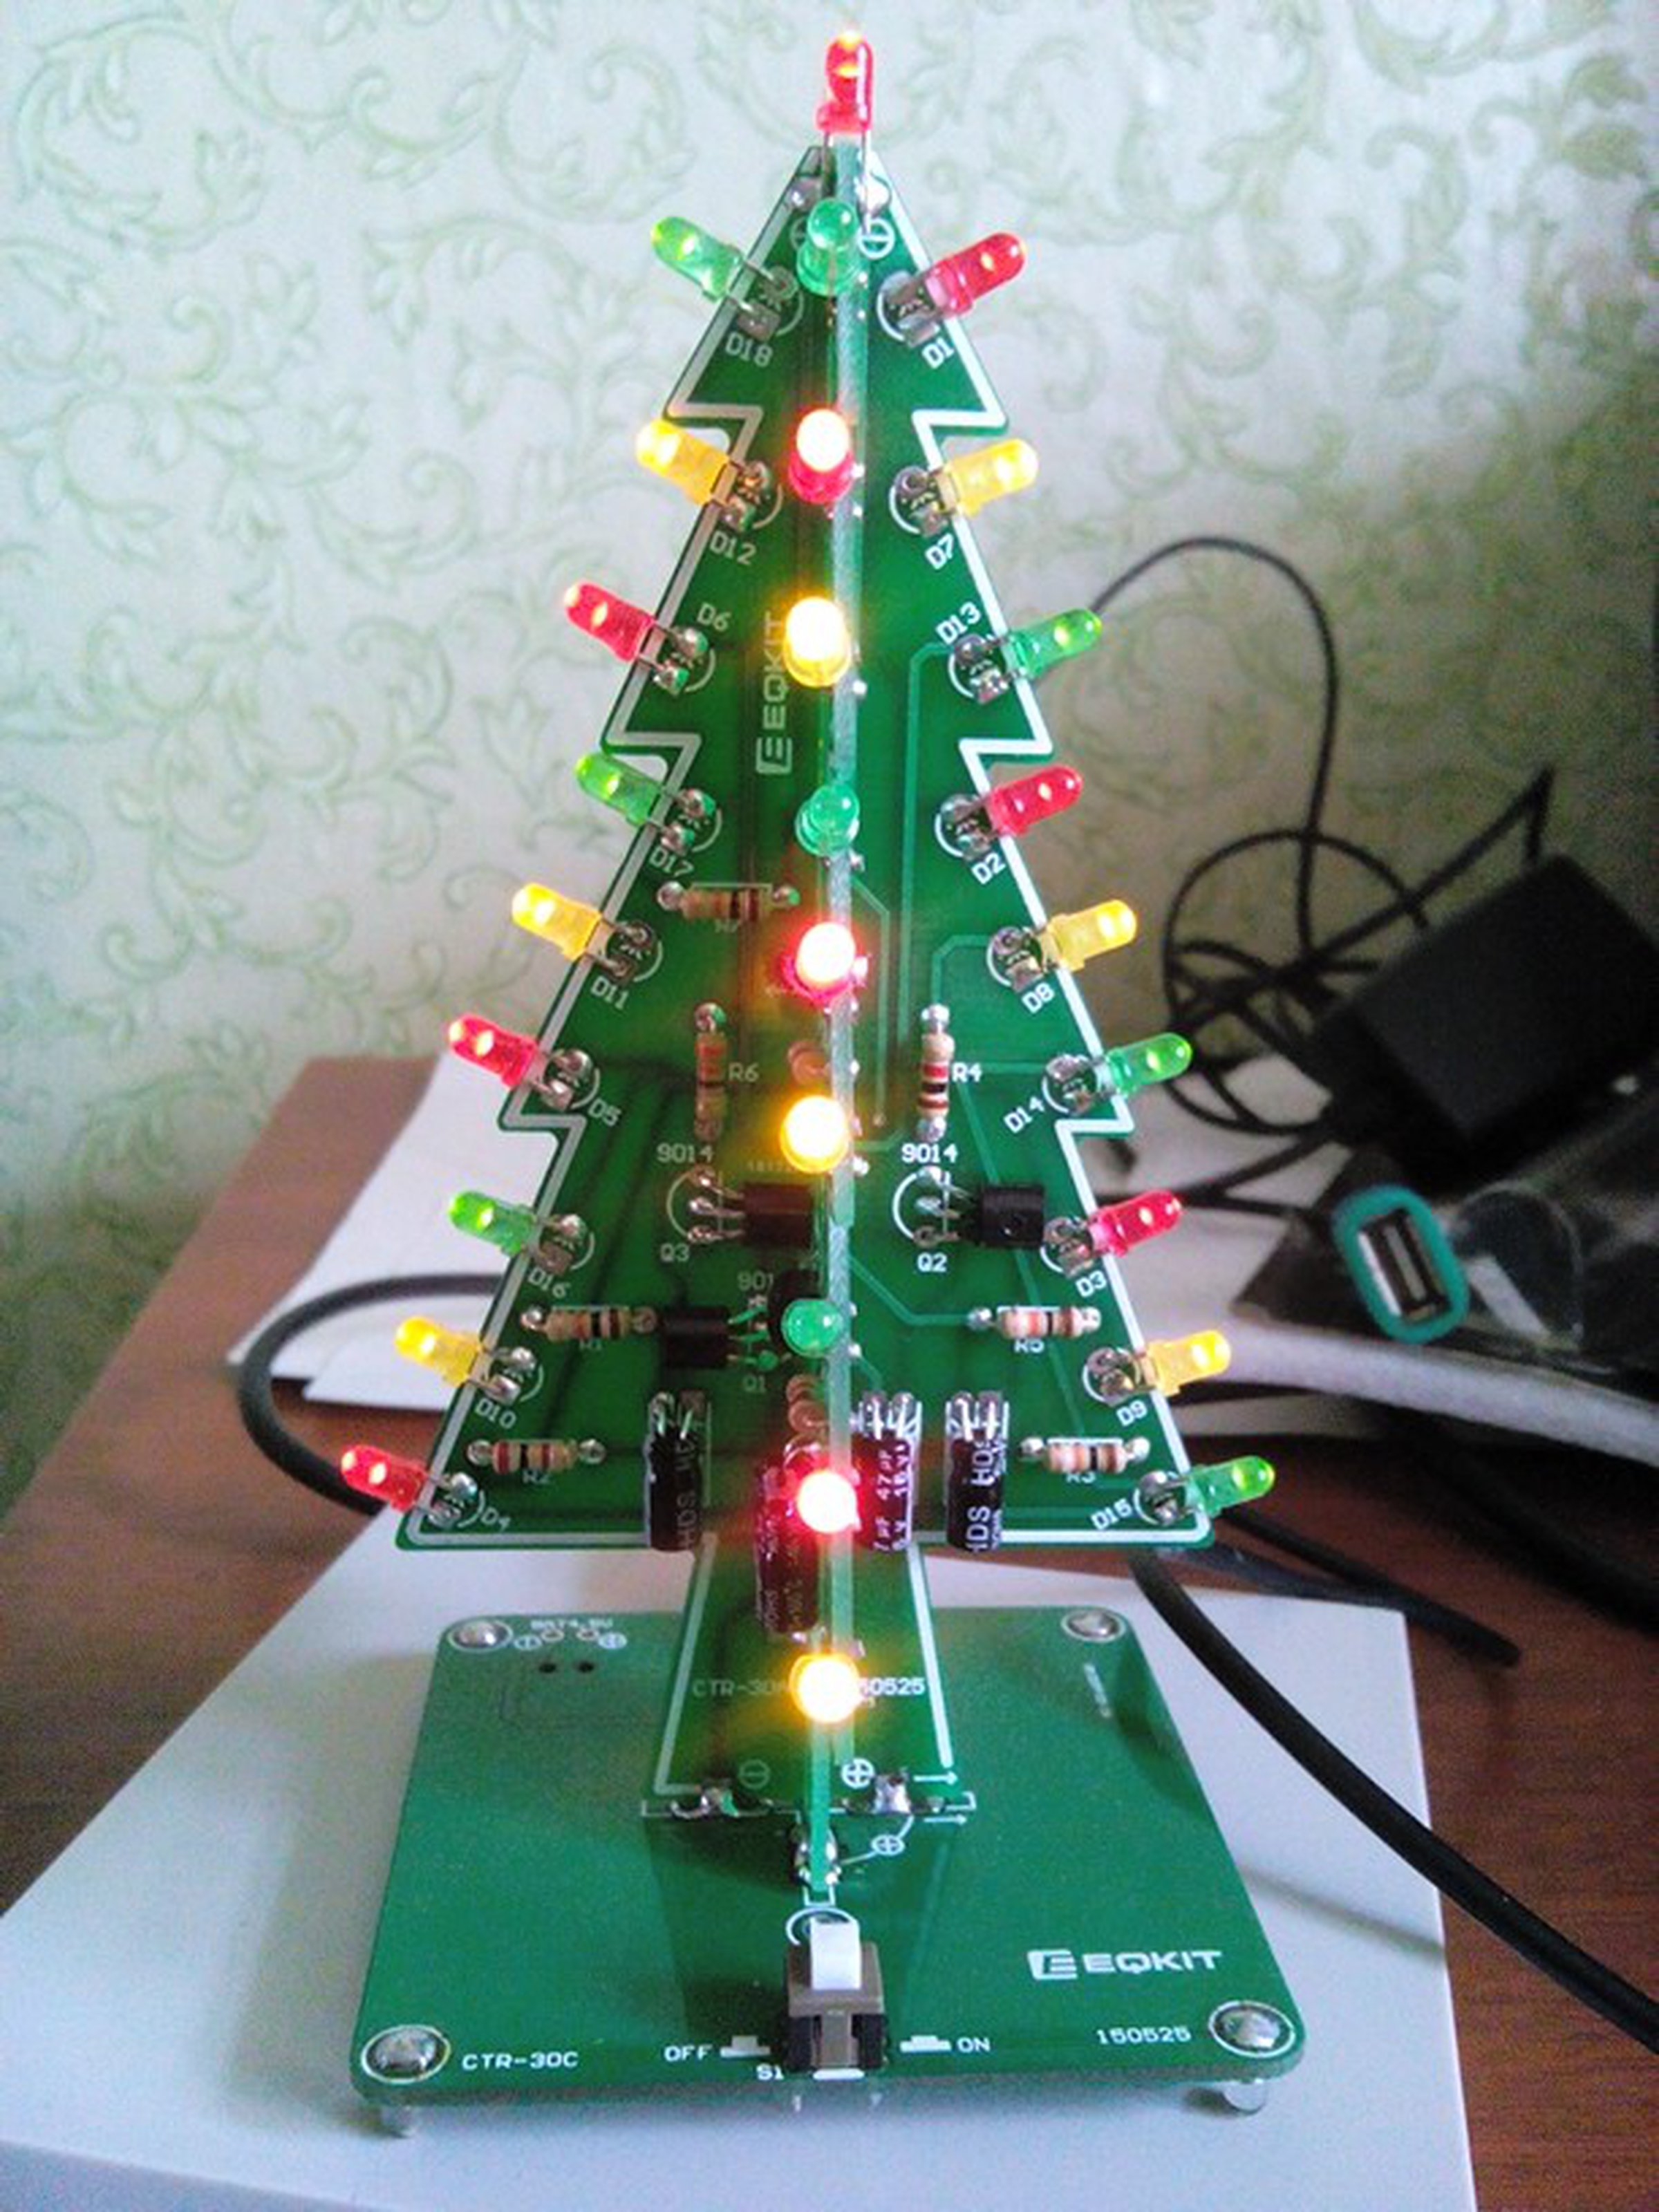 Diy Flashing Led Christmas Tree Circuit Kit7212 From Icstation On 12 Volt Flasher Click For Details 2